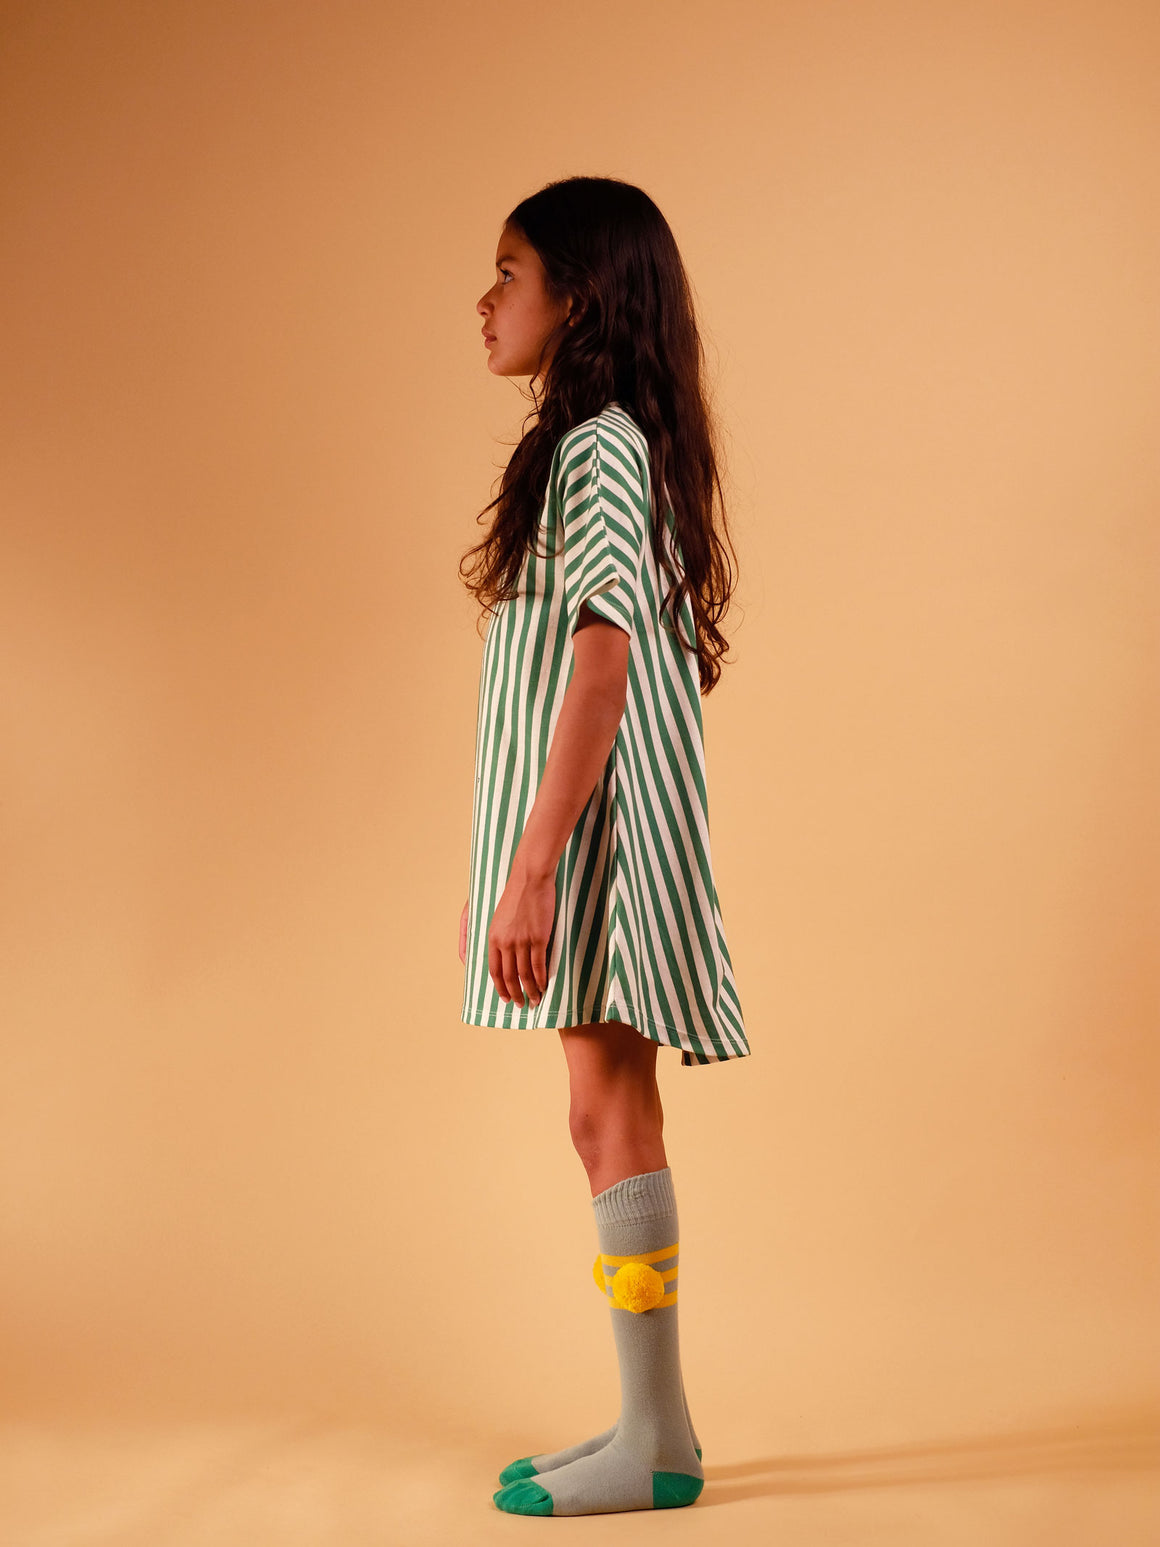 WOLF & RITA - Long Socks Stripes - Yellow - Last One!! Size: 18-24M